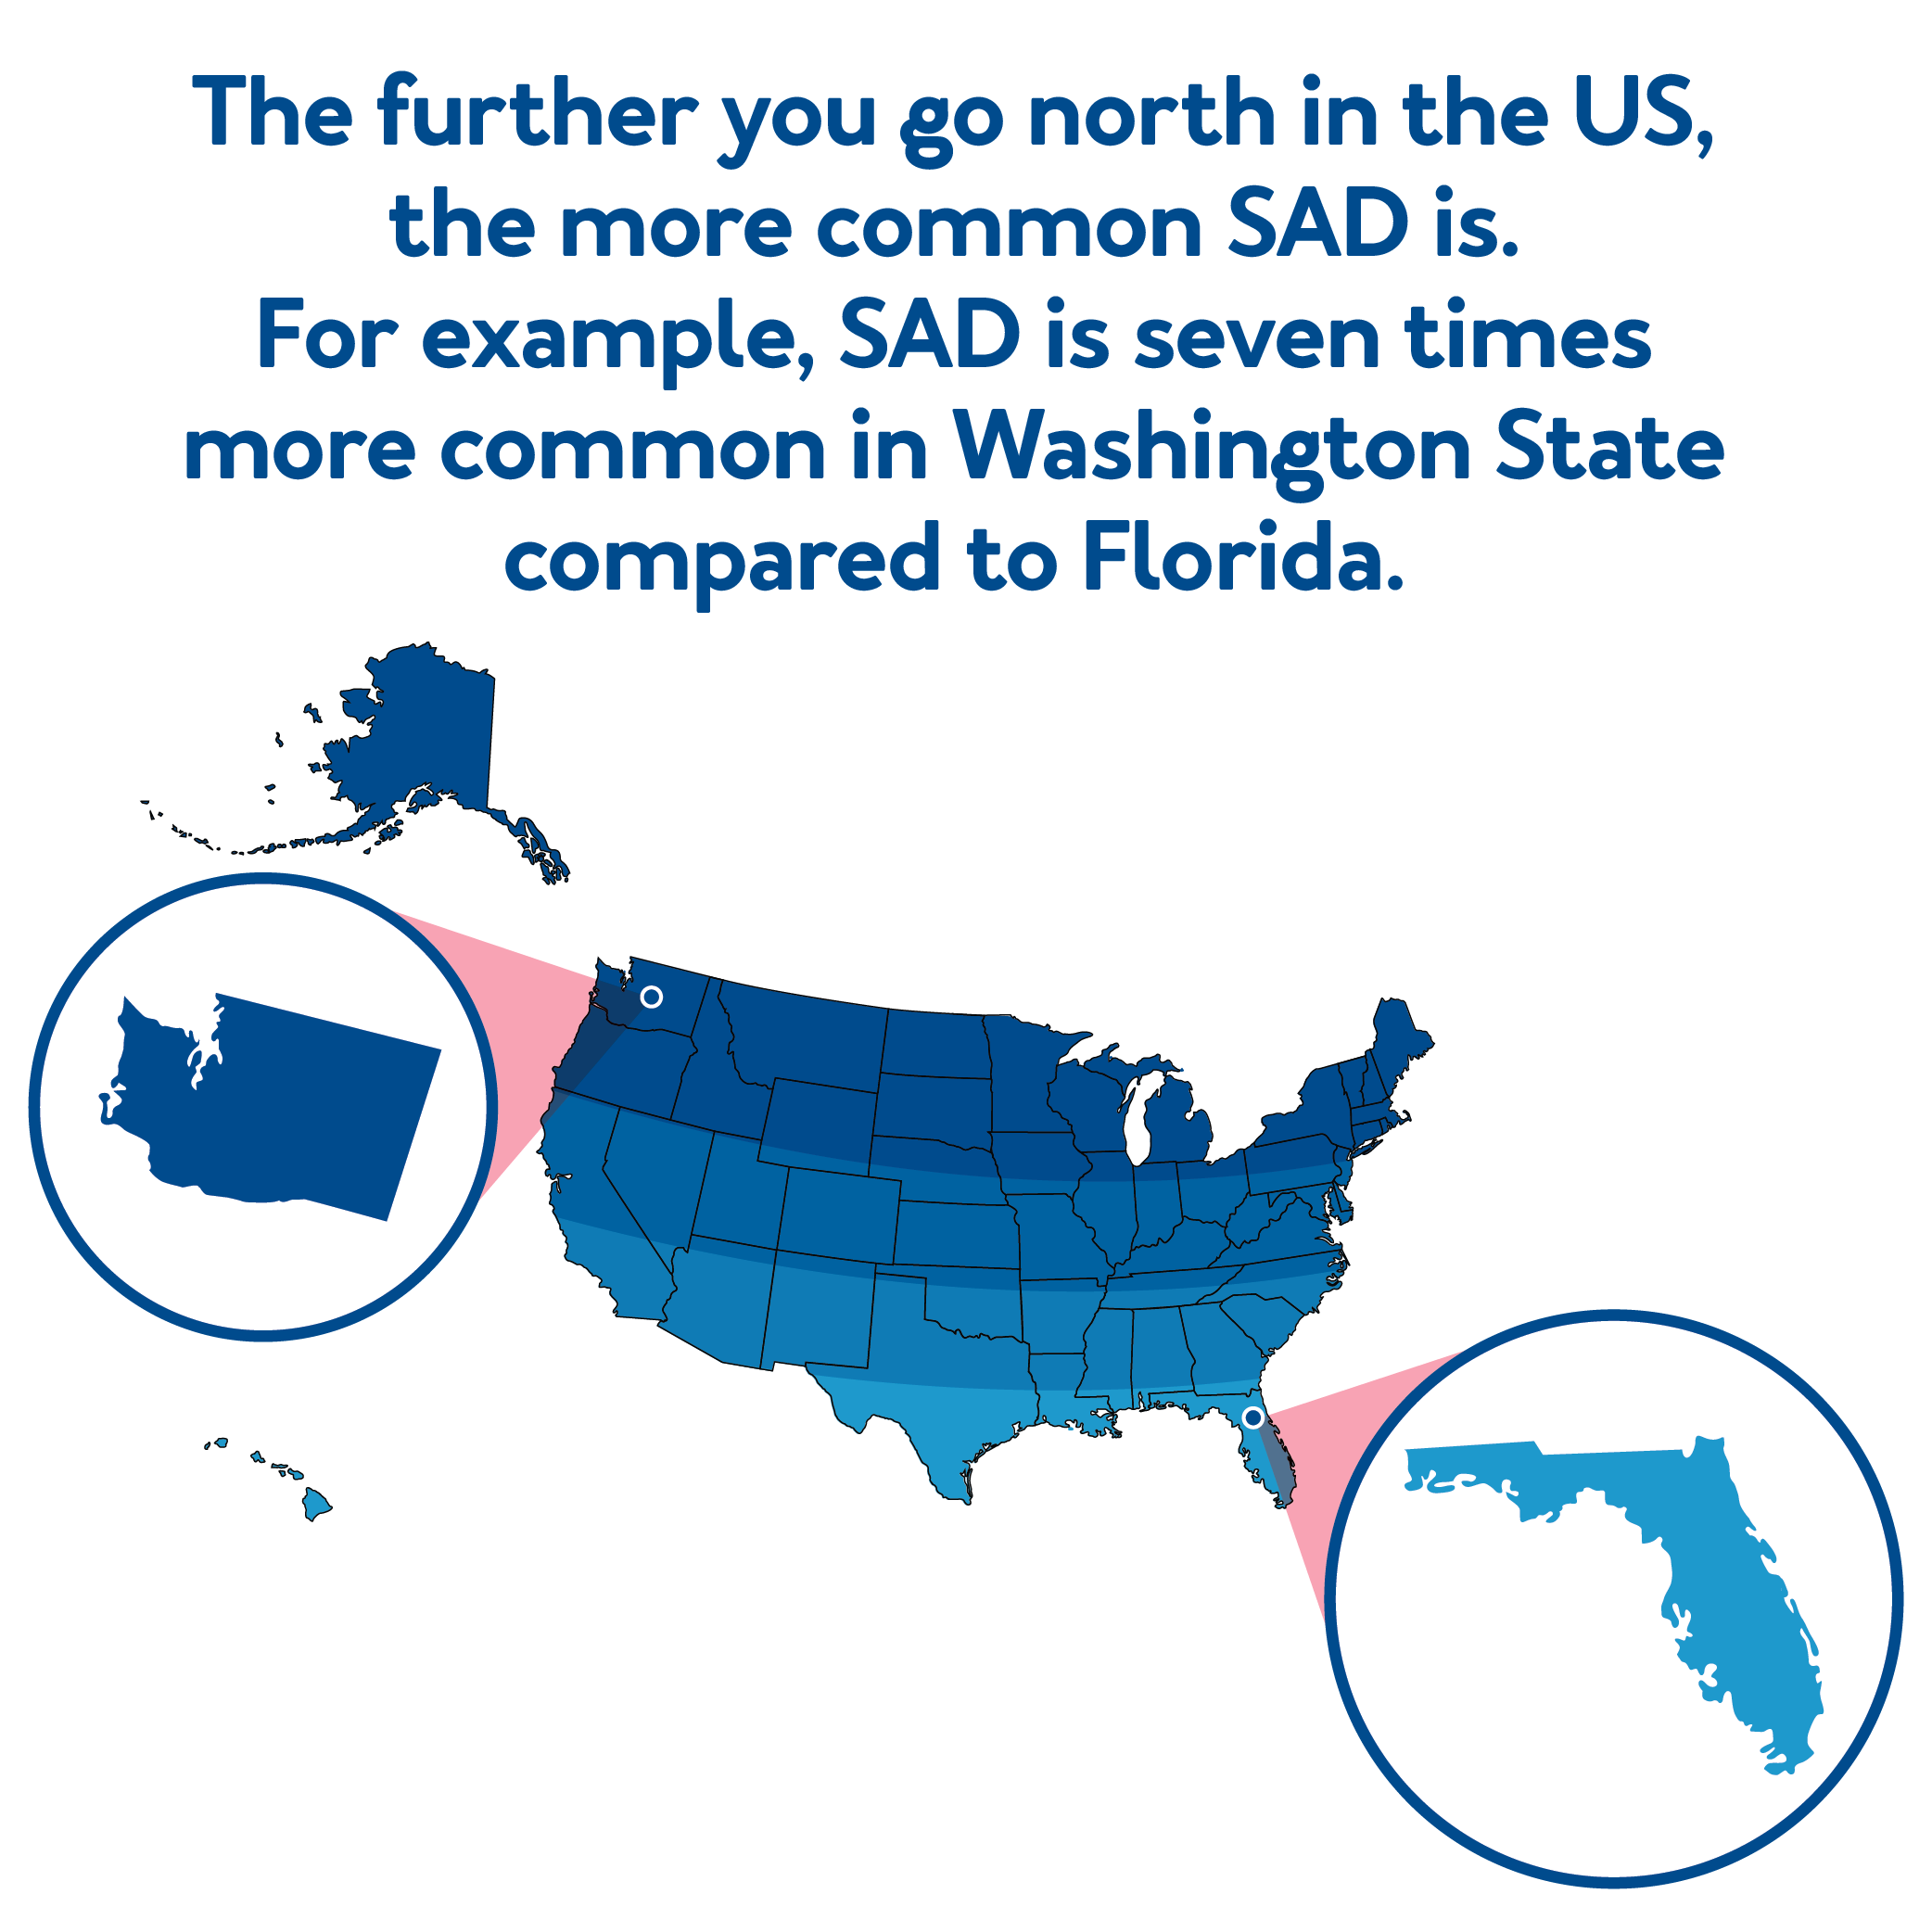 The further you go north in the U.S., the more common SAD is. For example, SAD is seven times more common in Washington State compared to Florida